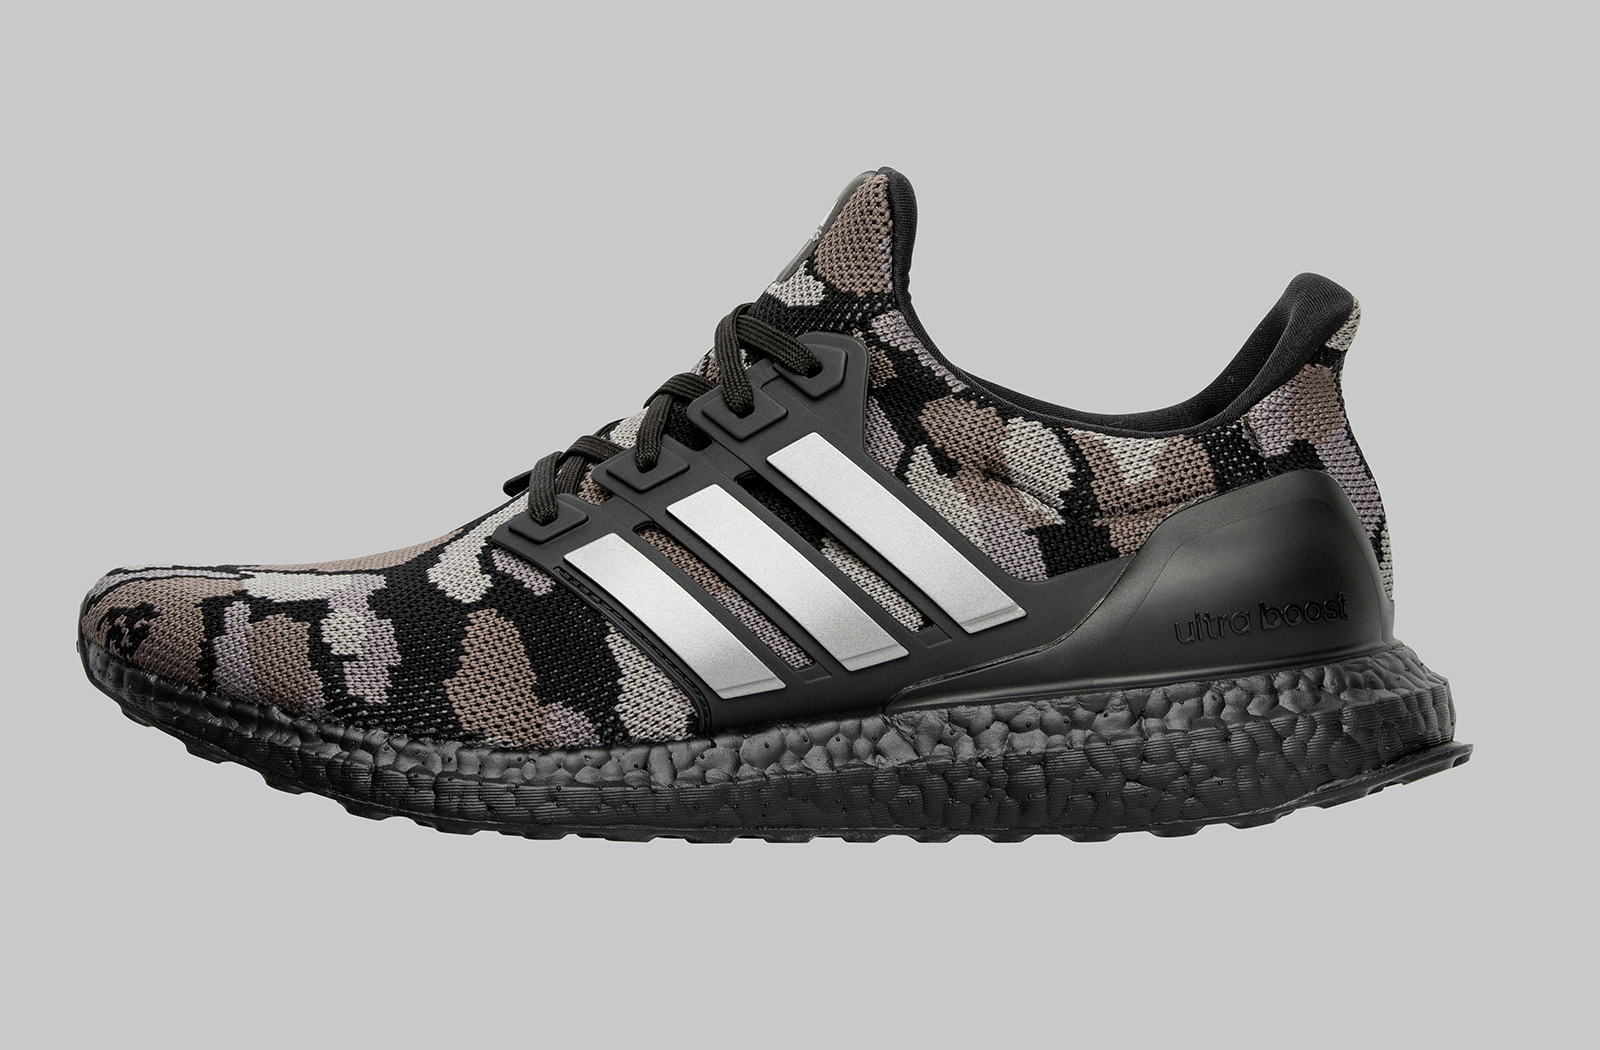 01ad439119343 Adidas x BAPE Launch Limited Edition Capsule Collection For Super ...